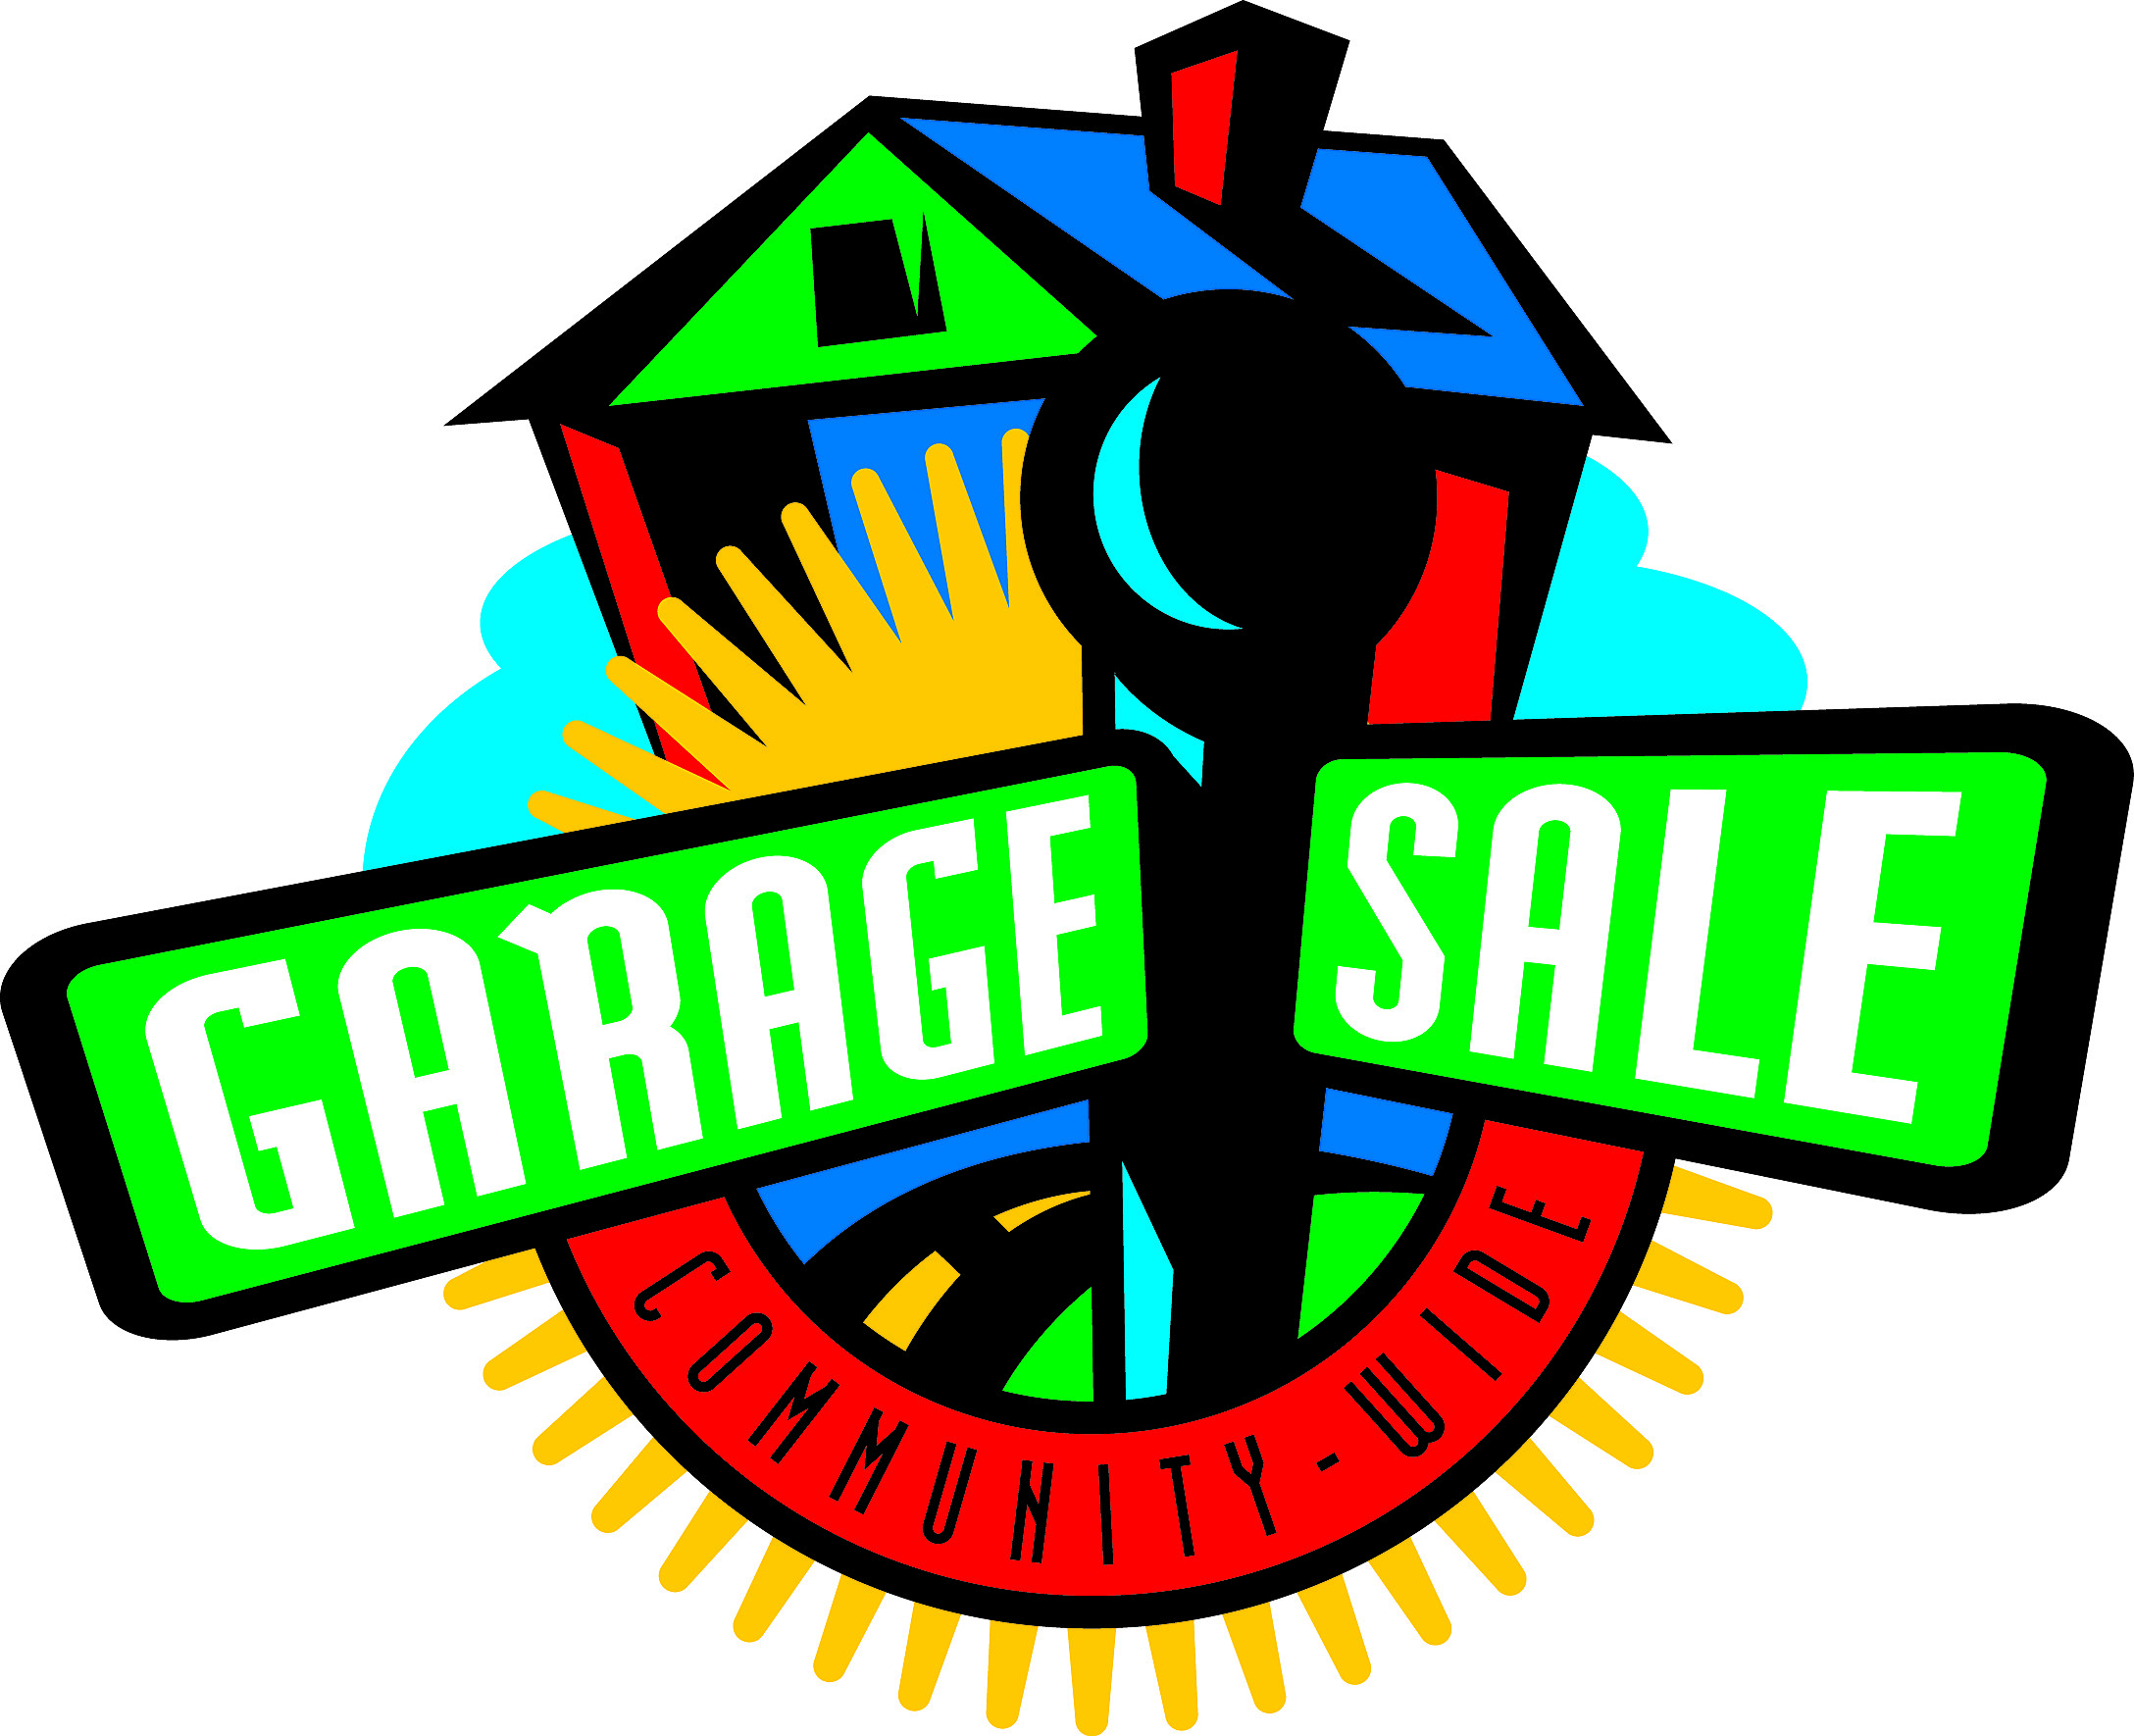 Garage Sale Price Stickers Dupaco Cedar Rapids Community Wide Garage Sale